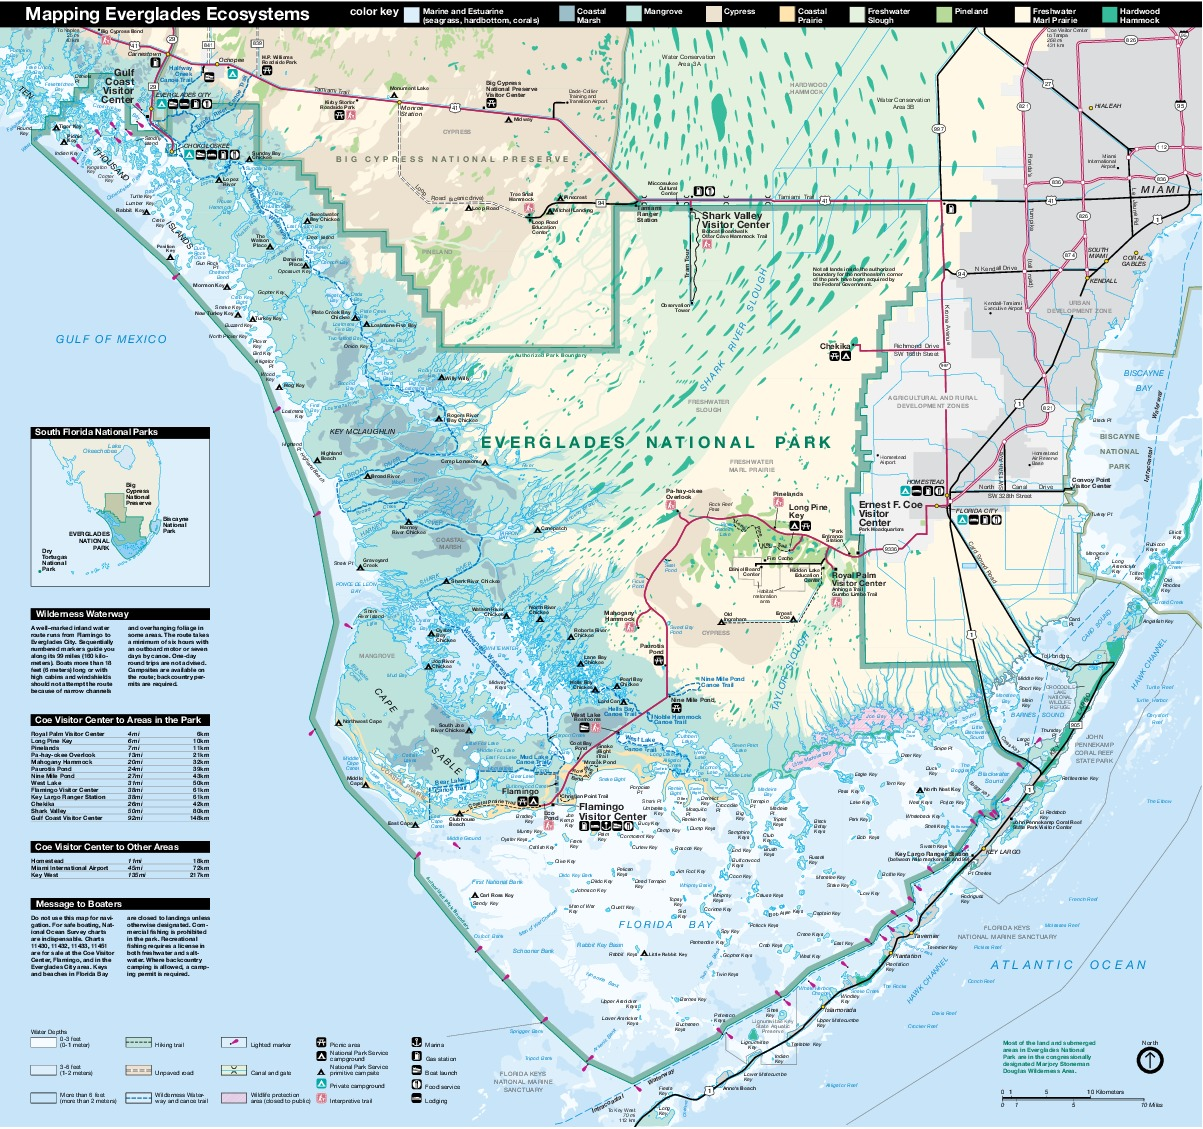 Everglades National Park Map, Florida, United States